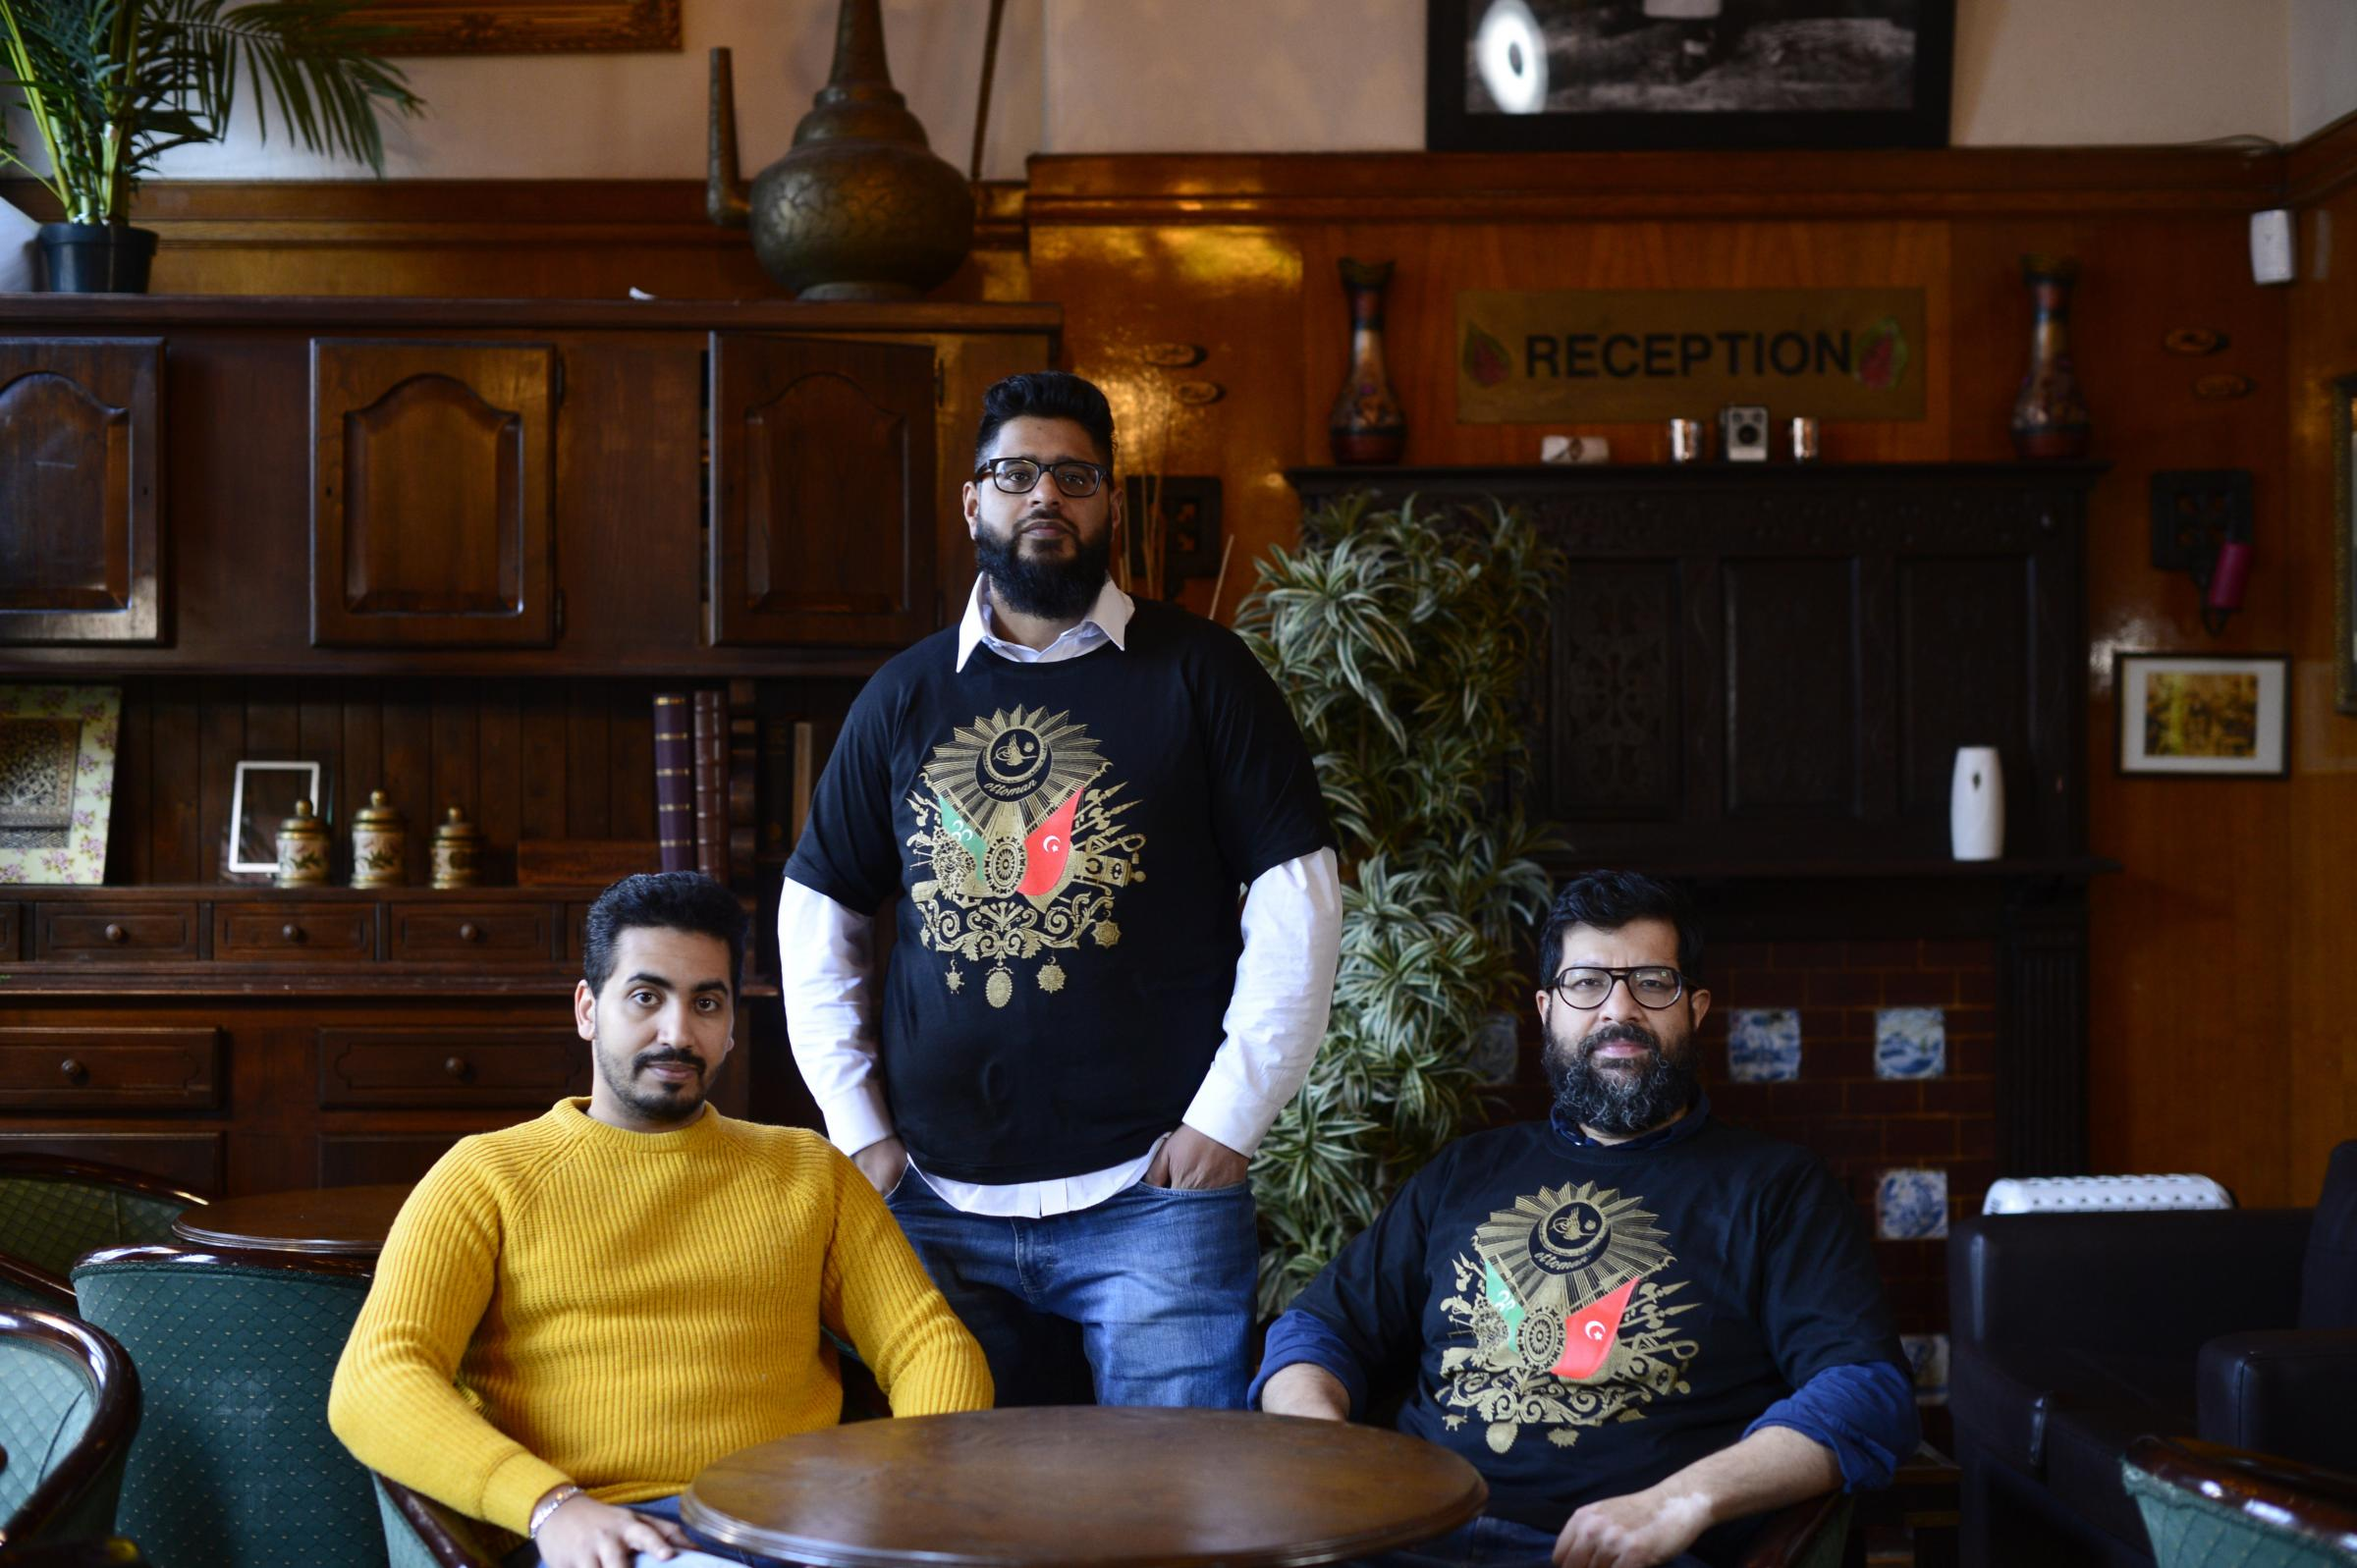 Herald Diary at Large: Glasgow's exotic Ottoman Coffee House - and the Graeme Souness connection